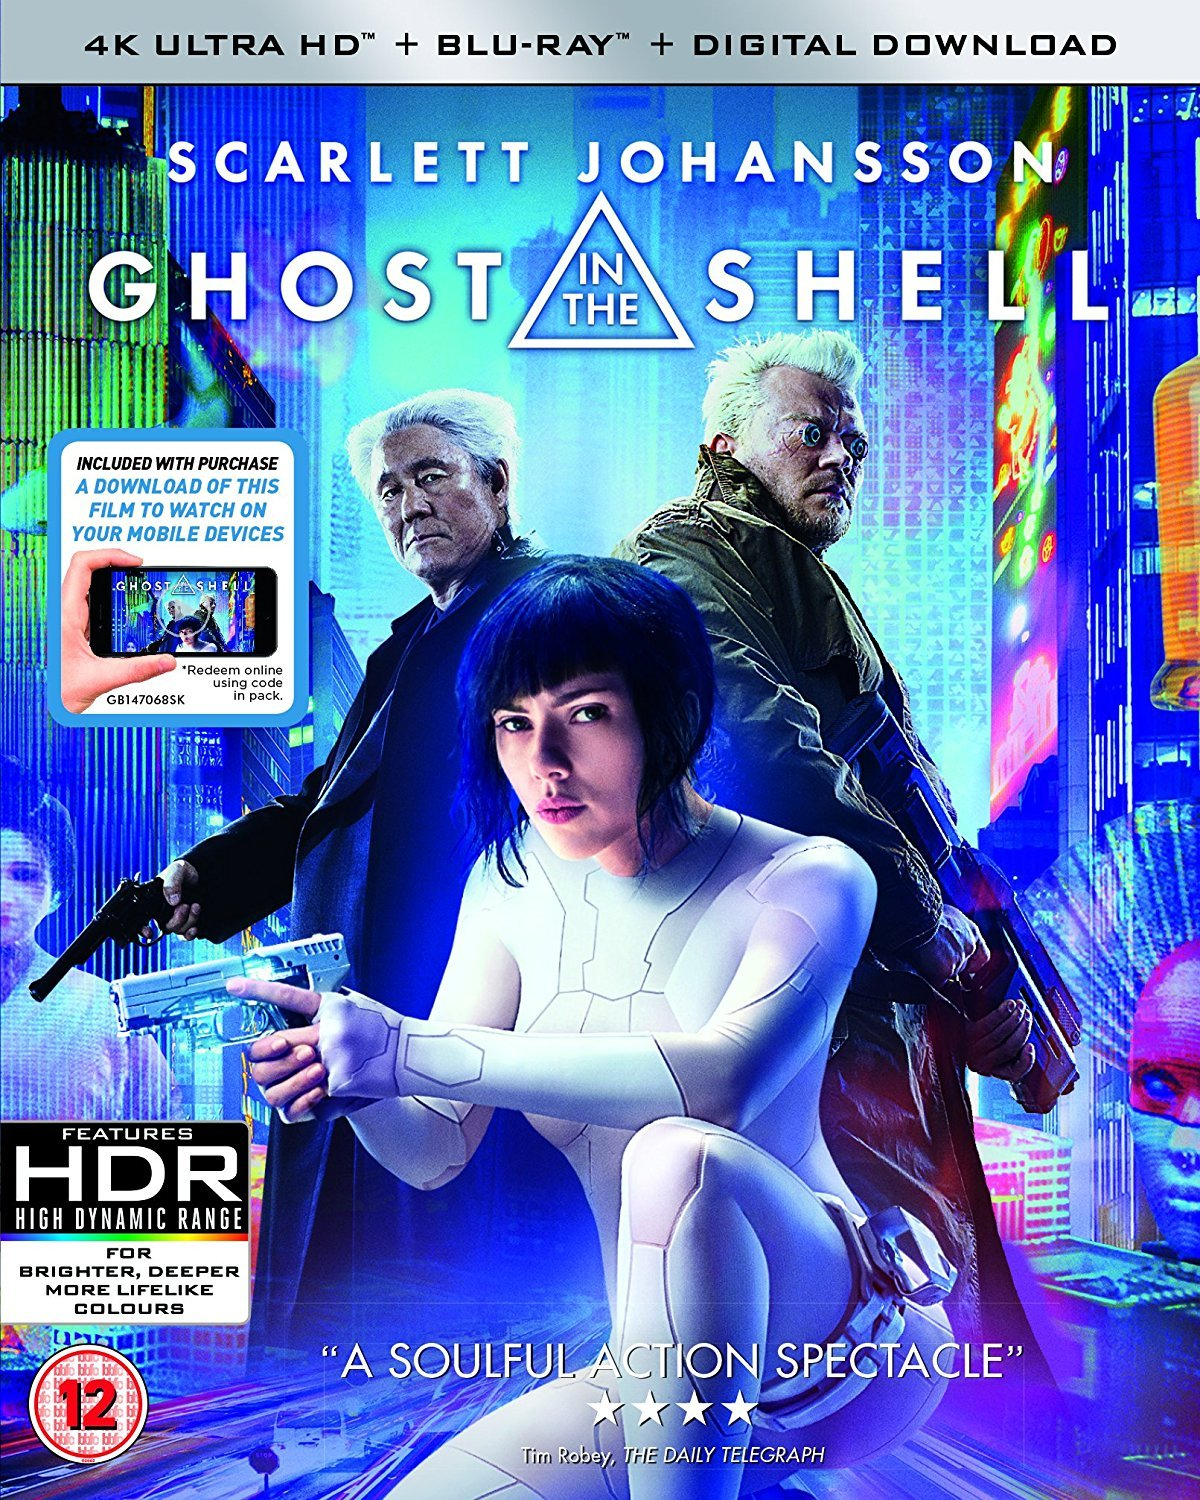 Amazon Com Ghost In The Shell 4k Uhd Blu Ray Scarlett Johansson Michael Wincott Michael Pitt Rupert Sanders Movies Tv